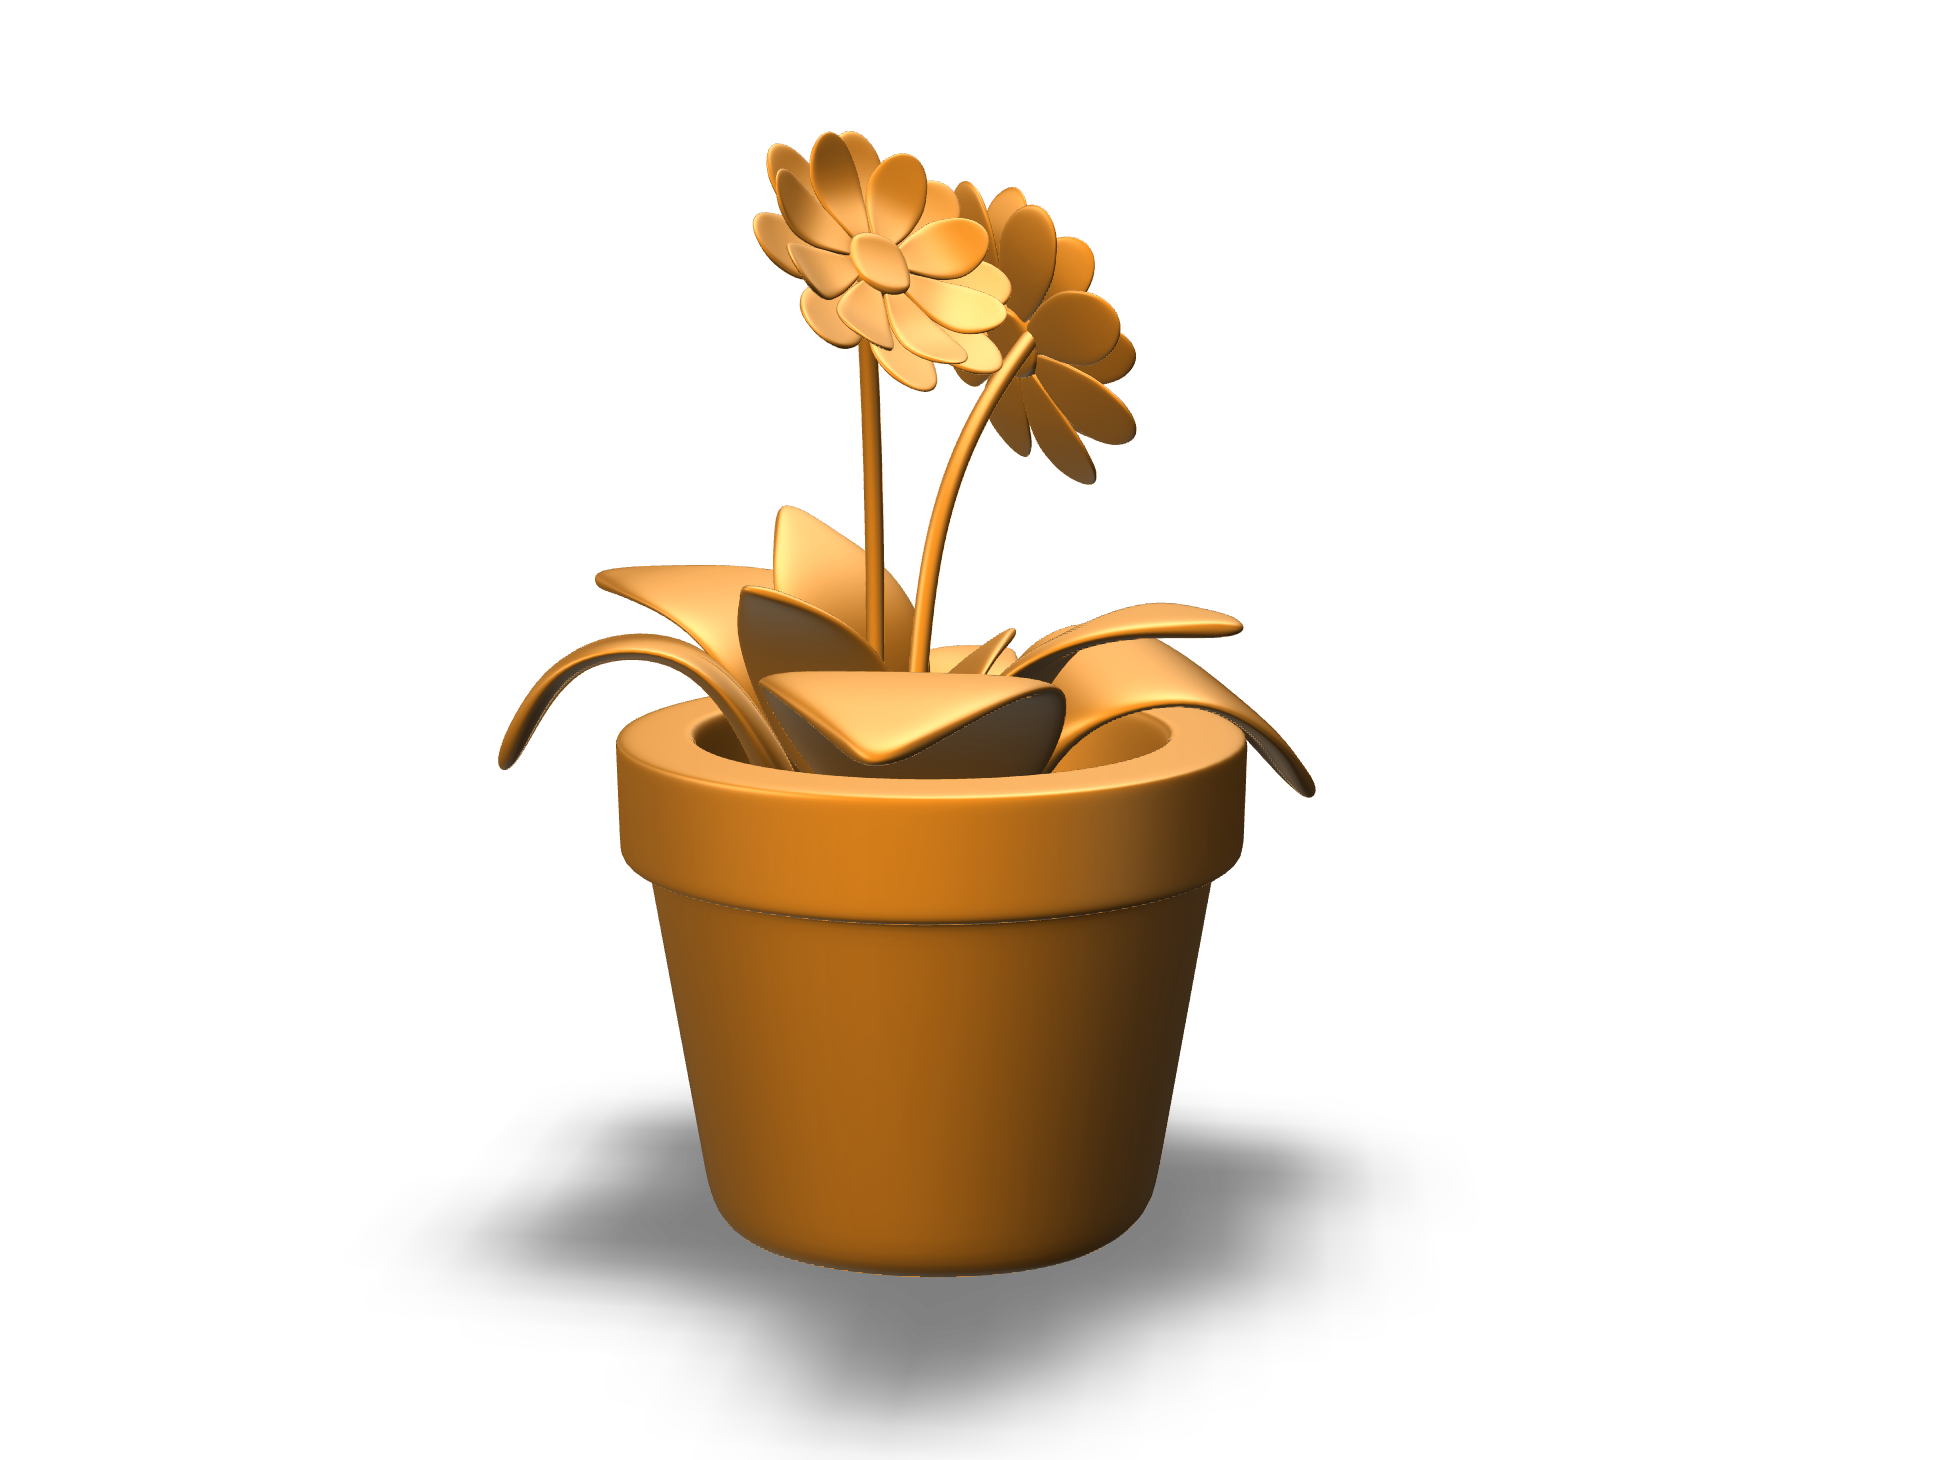 flower - 3D design by Rachel Mann Apr 12, 2018